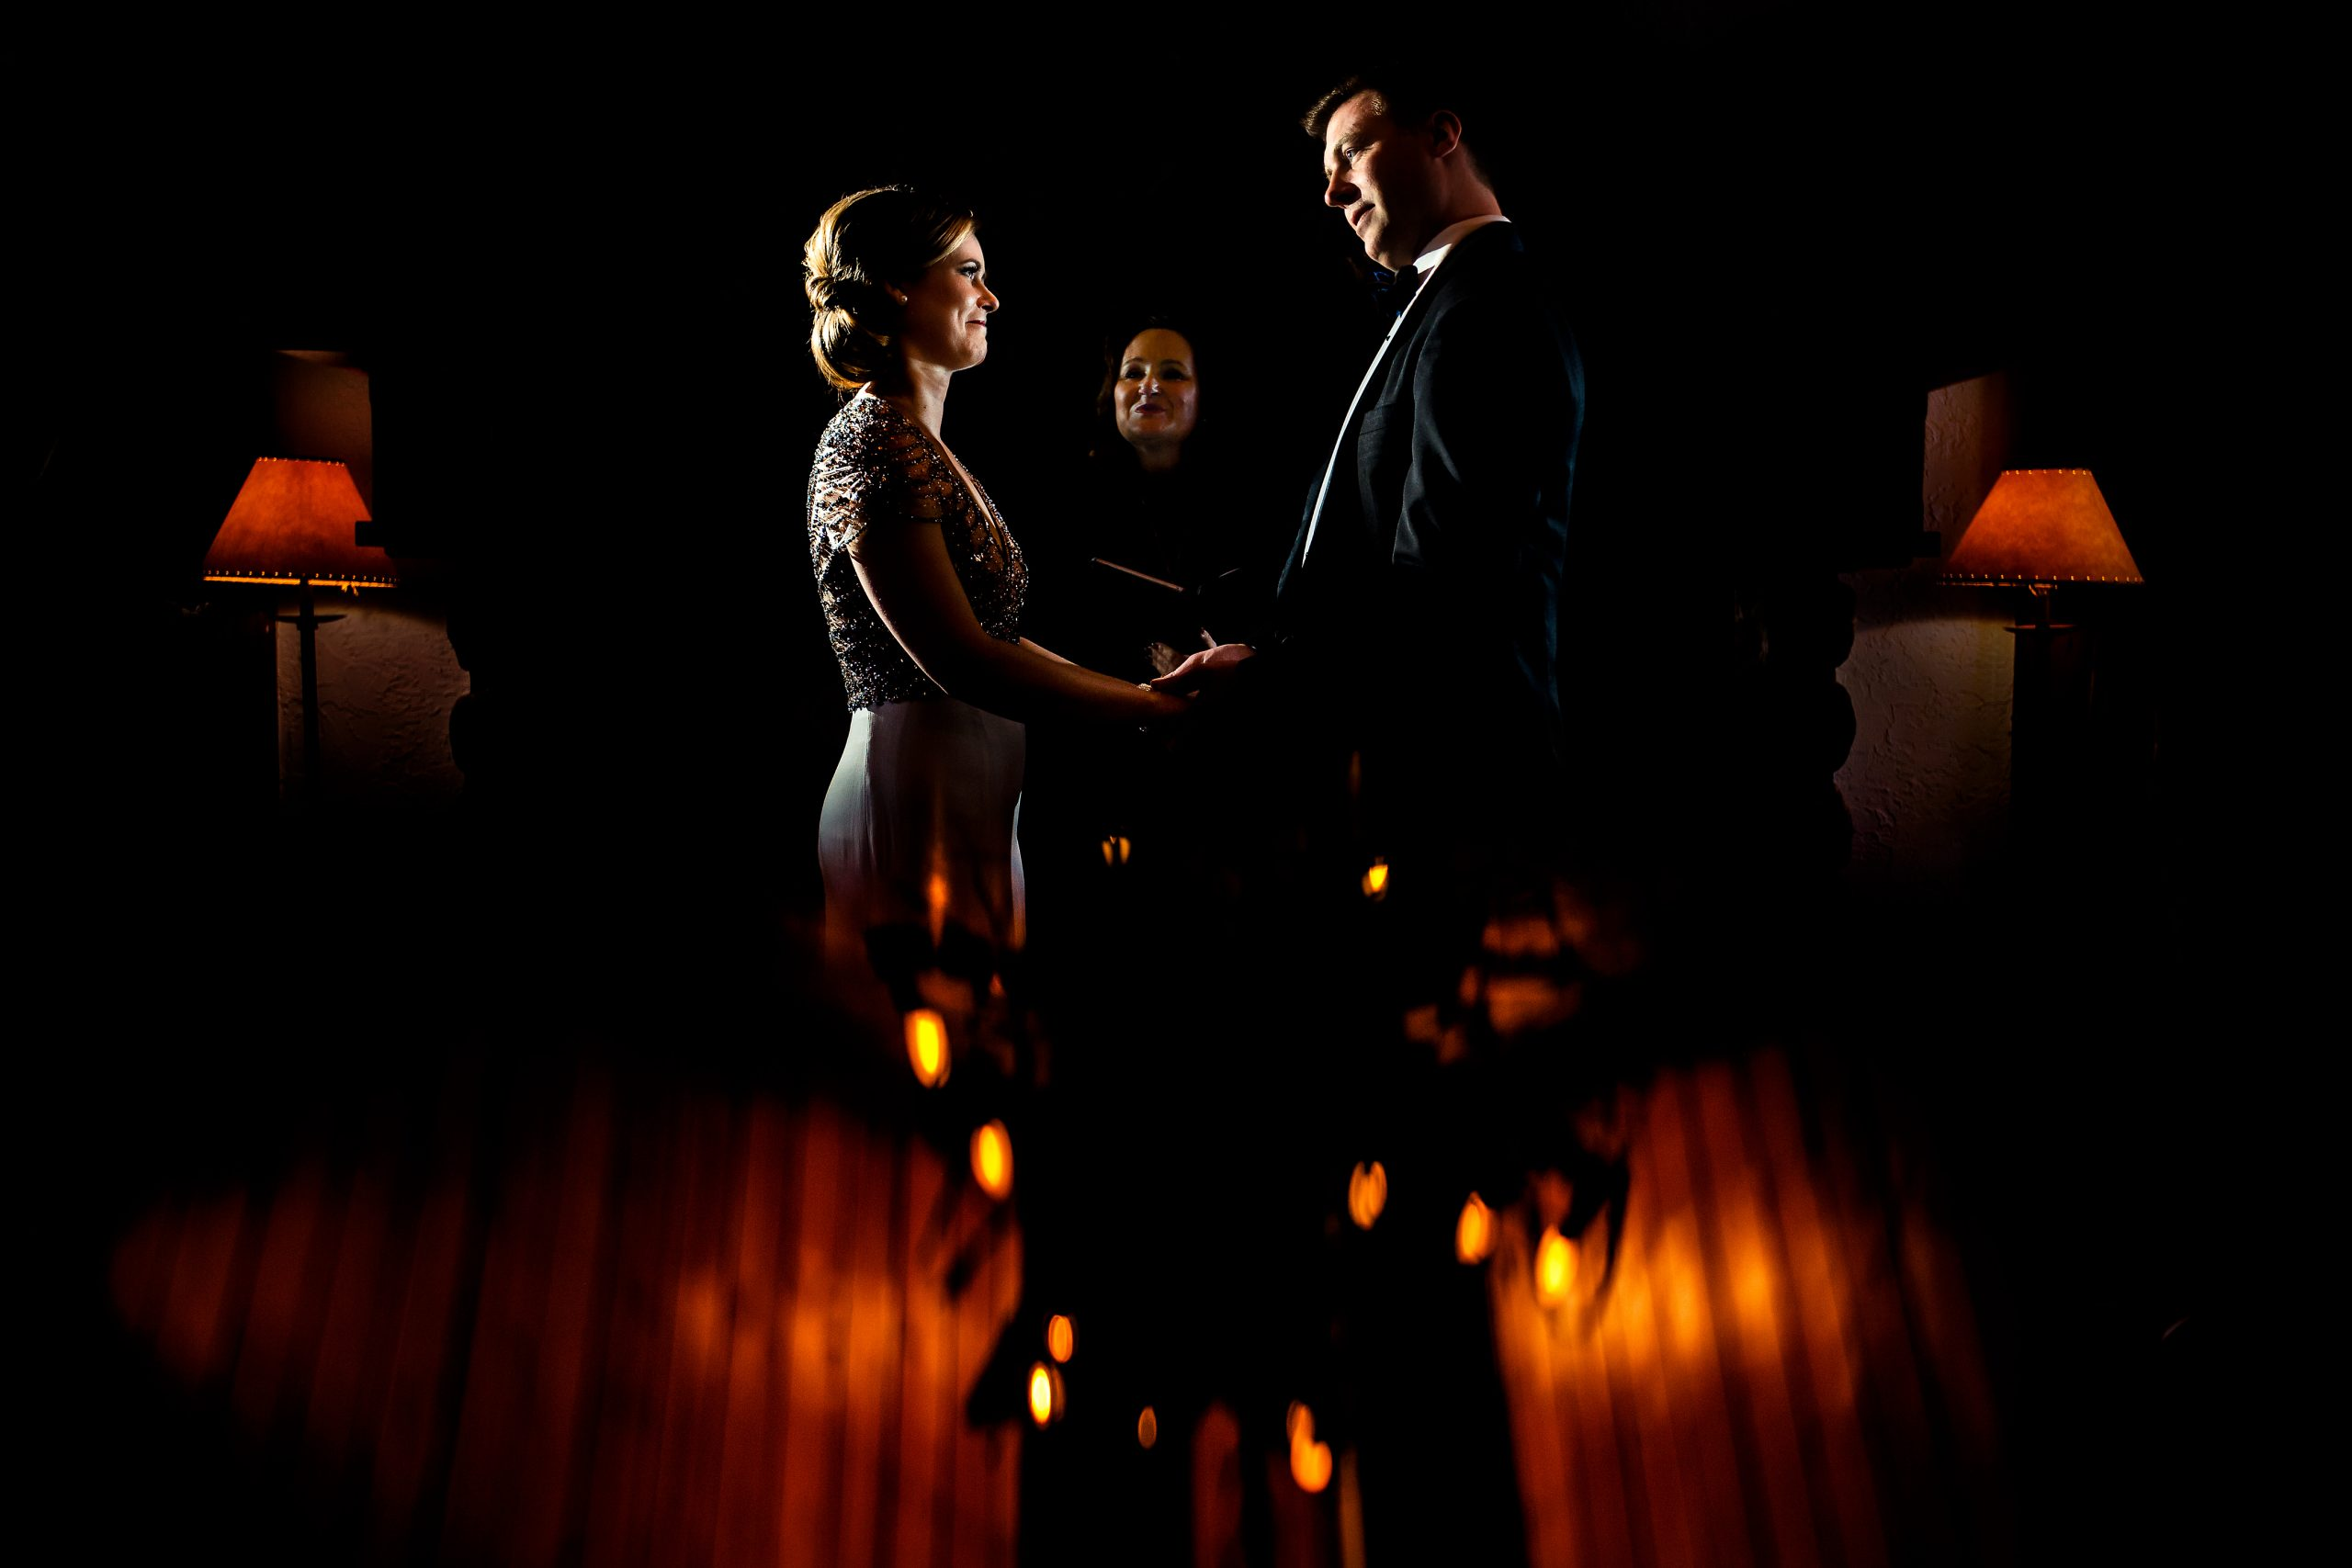 Bride and groom's wedding ceremony illuminated by warm lamps.